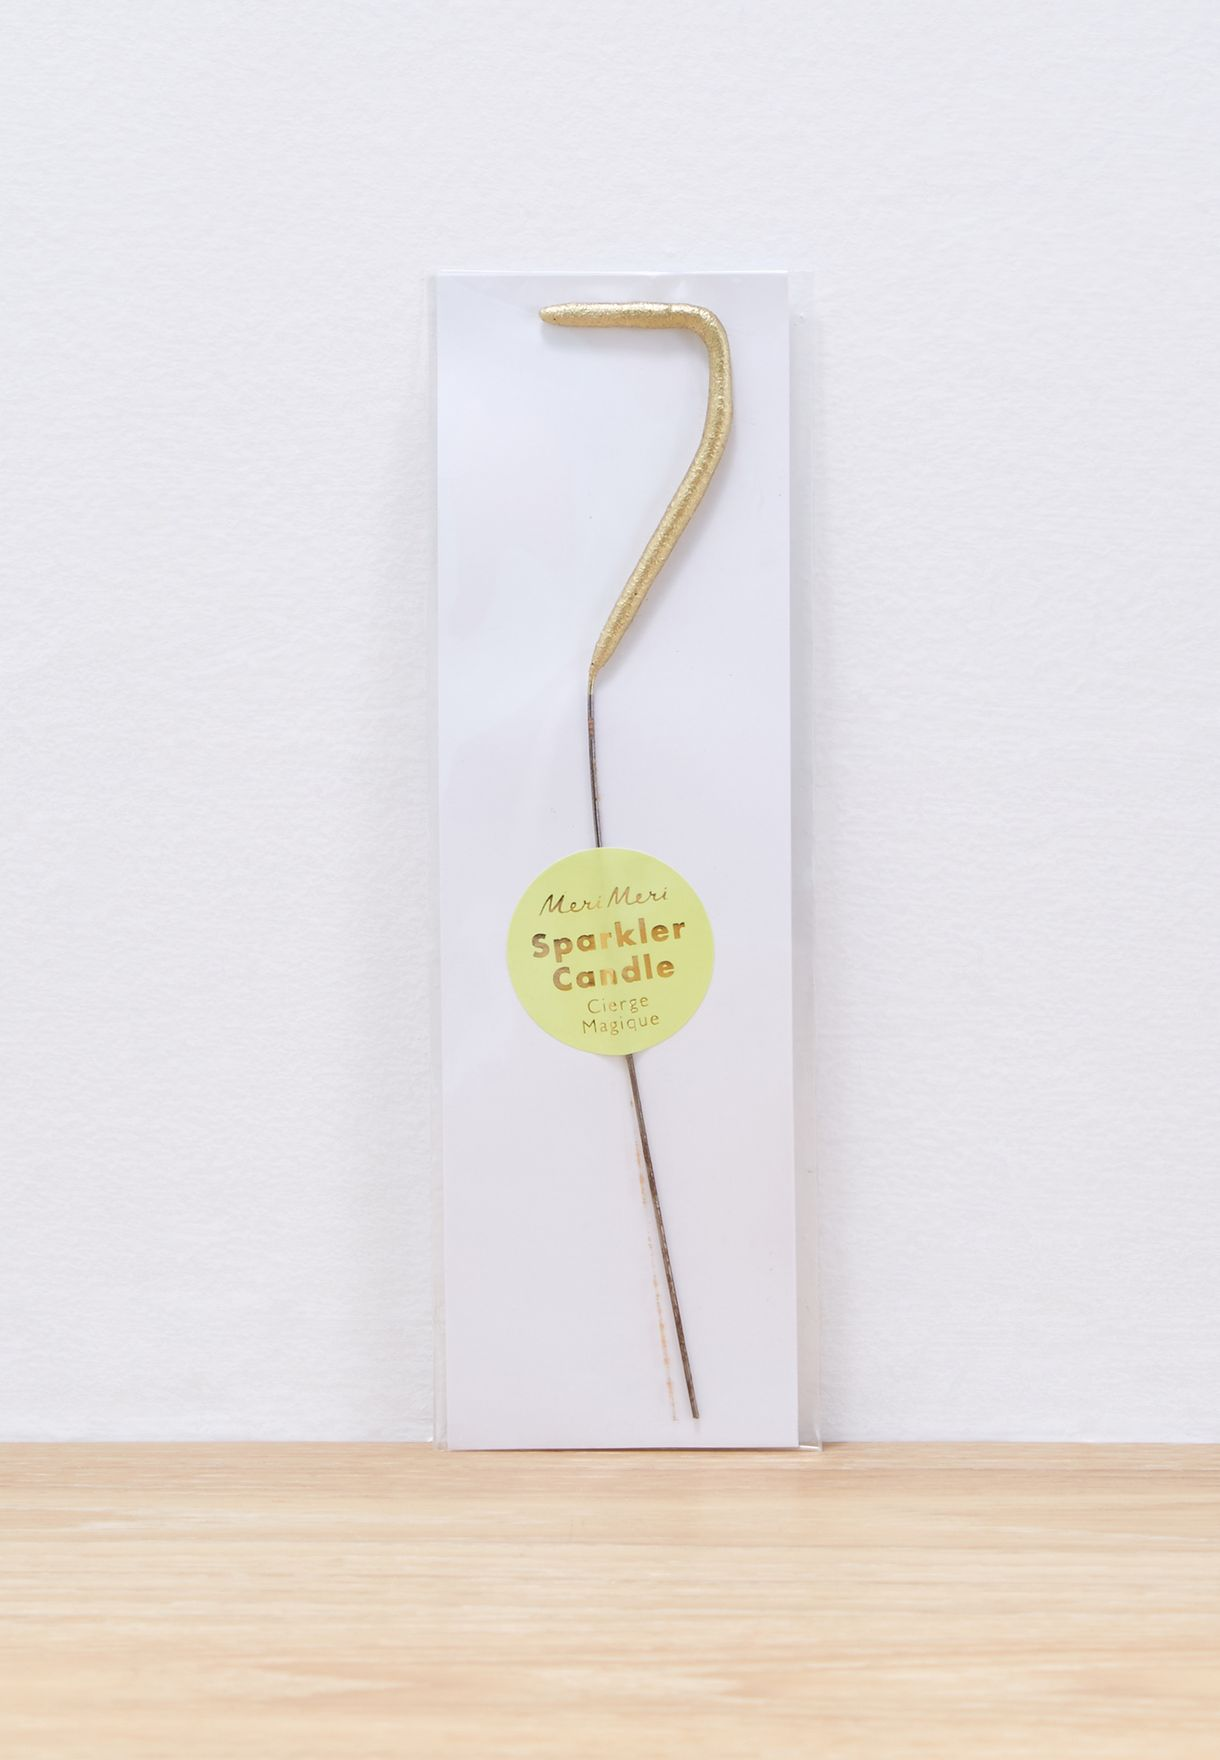 7 Initial Sparkler Candle